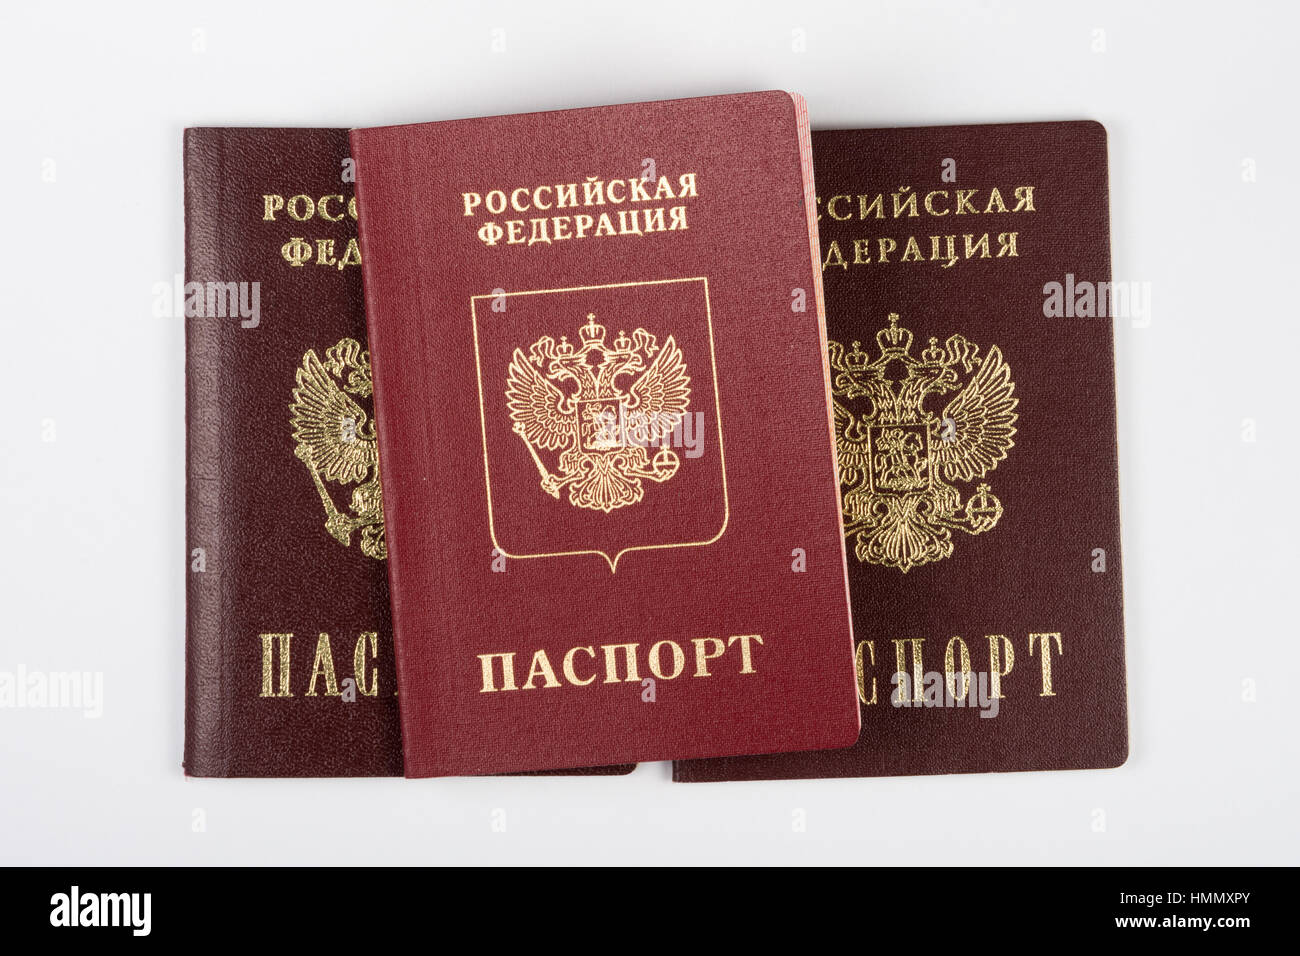 Who is a resident of the Russian Federation